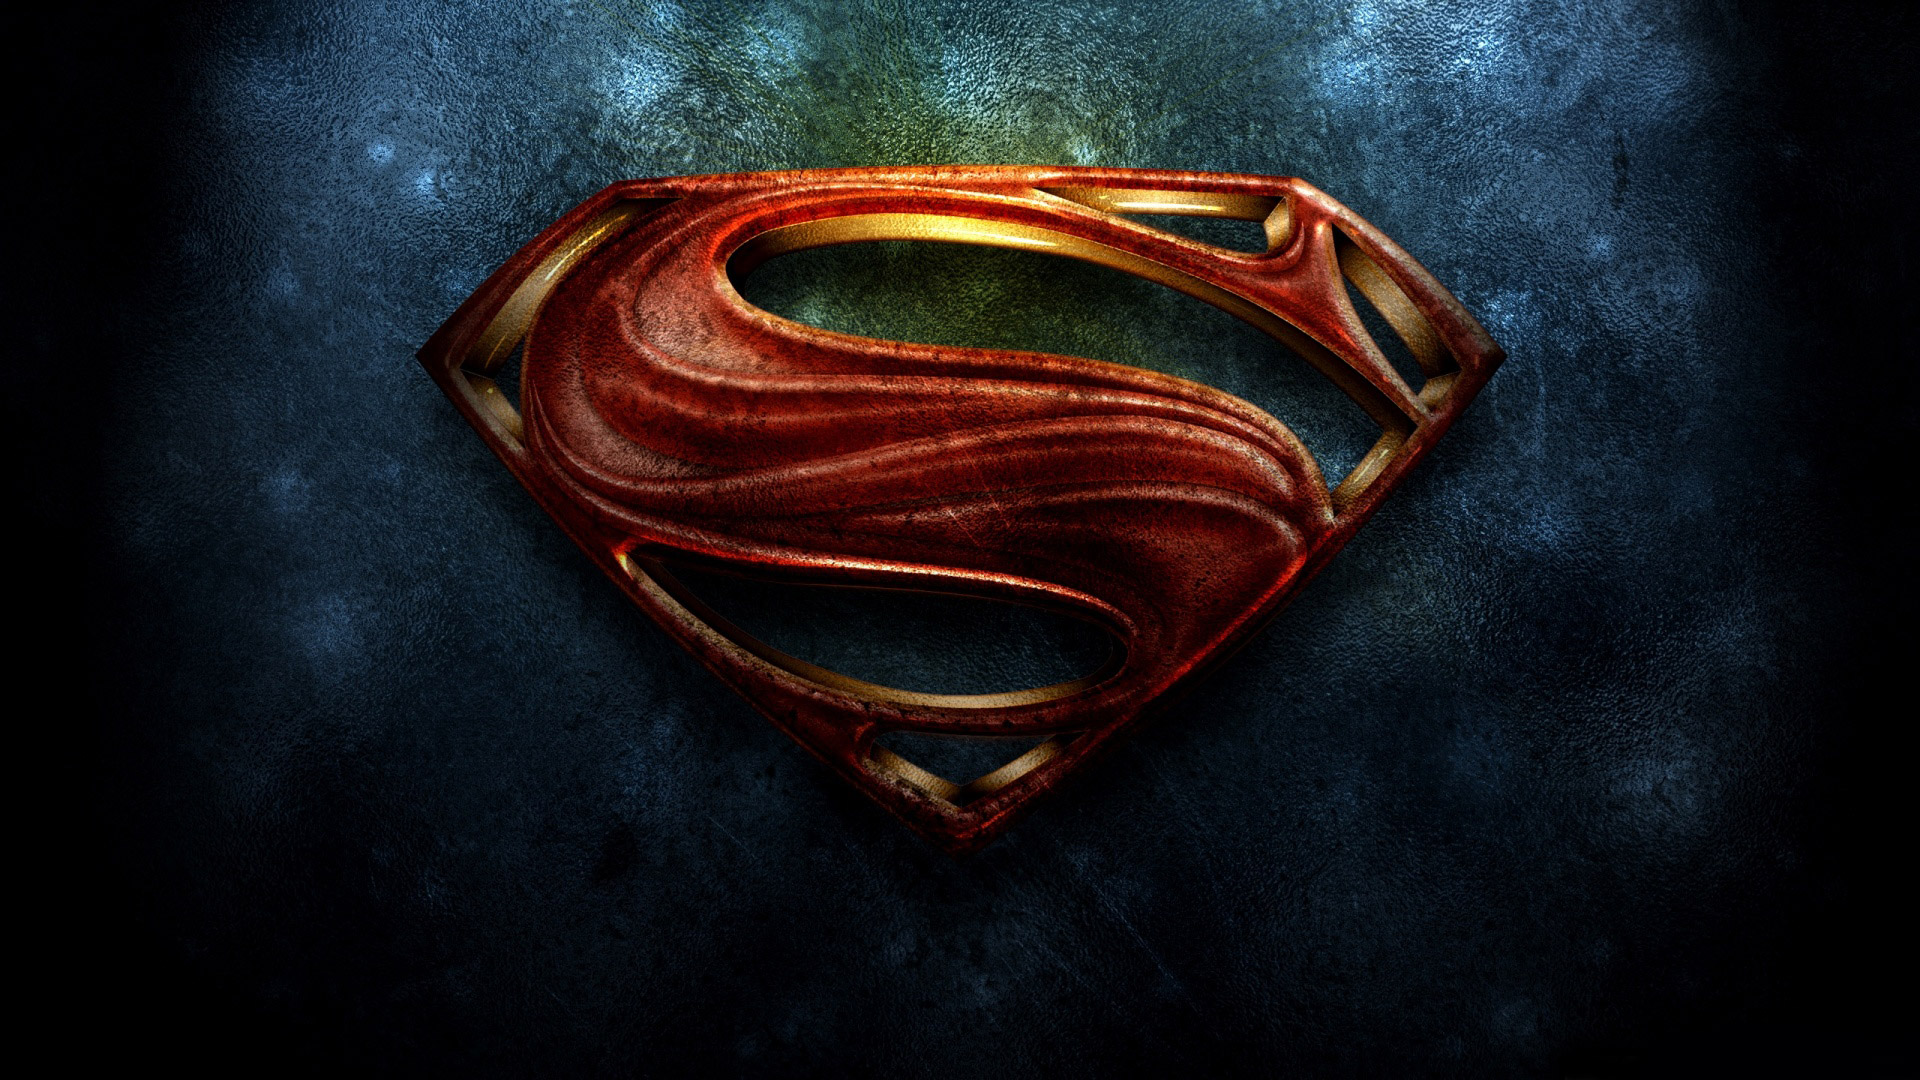 Superman The Man of Steel 2013 Logo HD Wallpaper 1920x1080